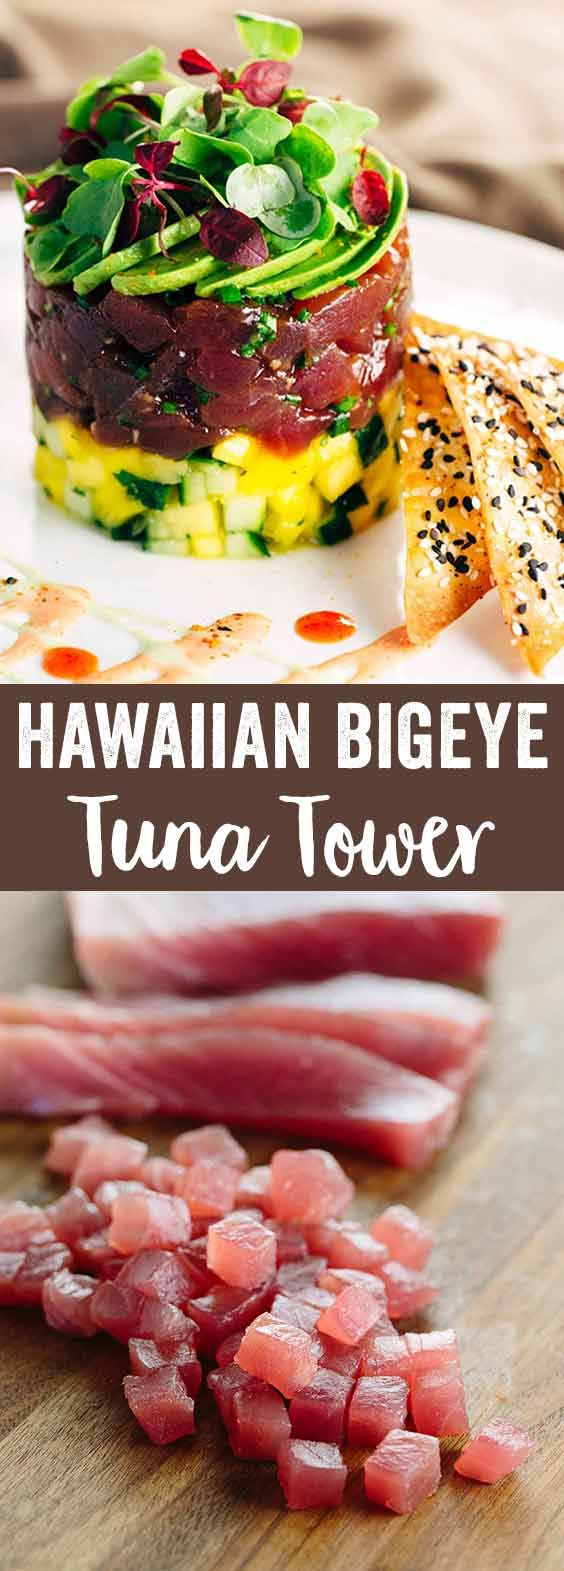 Hawaiian Bigeye Tuna Tower with Sesame Wonton Crisps - Simple yet elegant recipe combines bold flavors of the delectable ahi tuna with the crunchy baked spiced crackers. via @foodiegavin